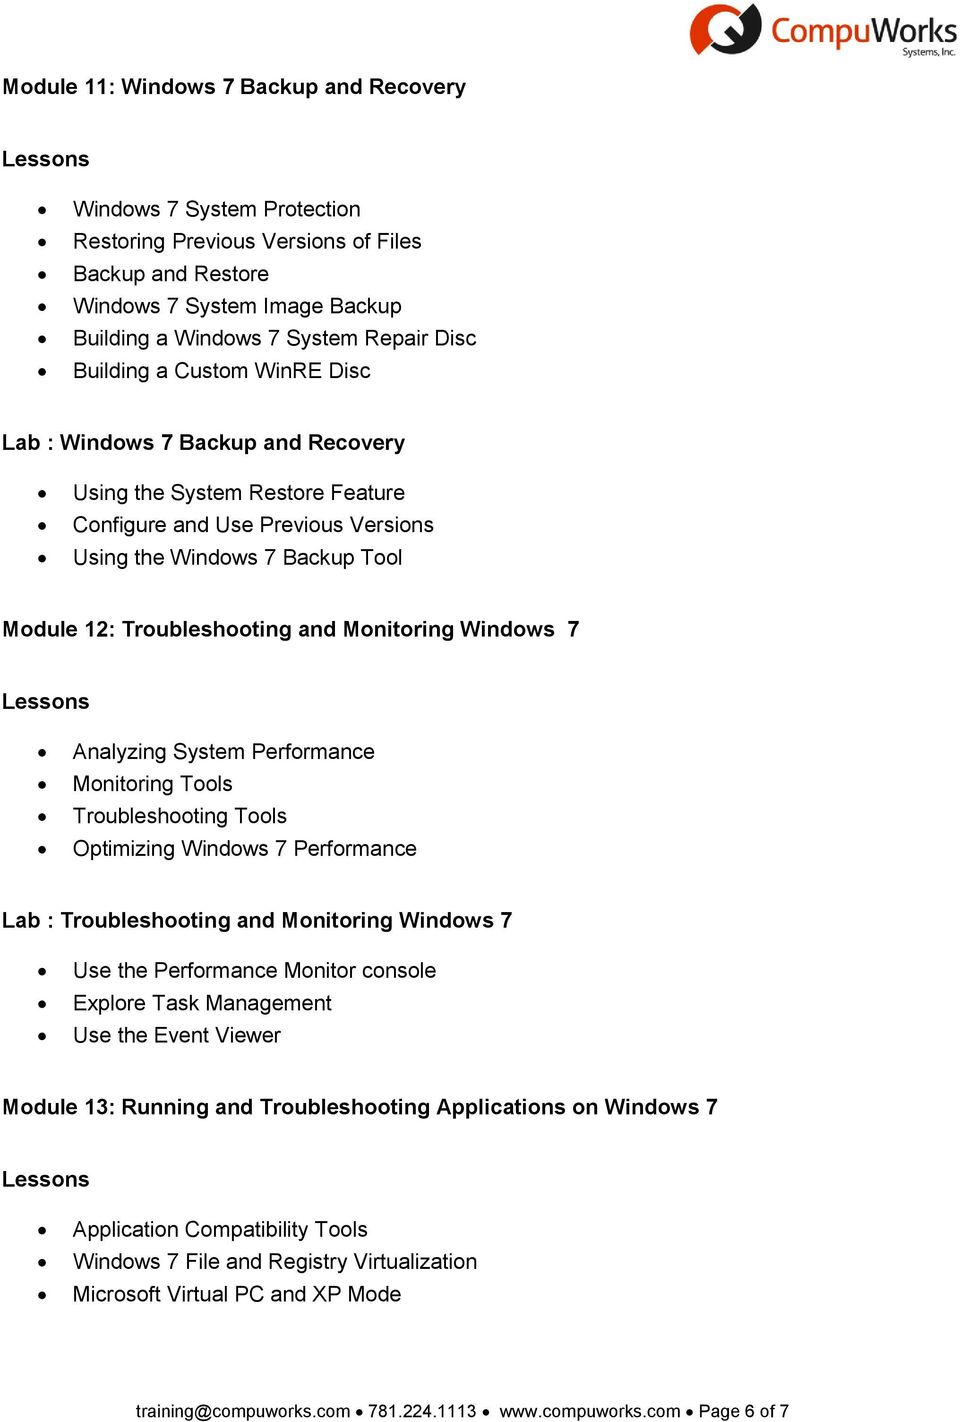 Monitoring Windows 7 Analyzing System Performance Monitoring Tools Troubleshooting Tools Optimizing Windows 7 Performance Lab : Troubleshooting and Monitoring Windows 7 Use the Performance Monitor